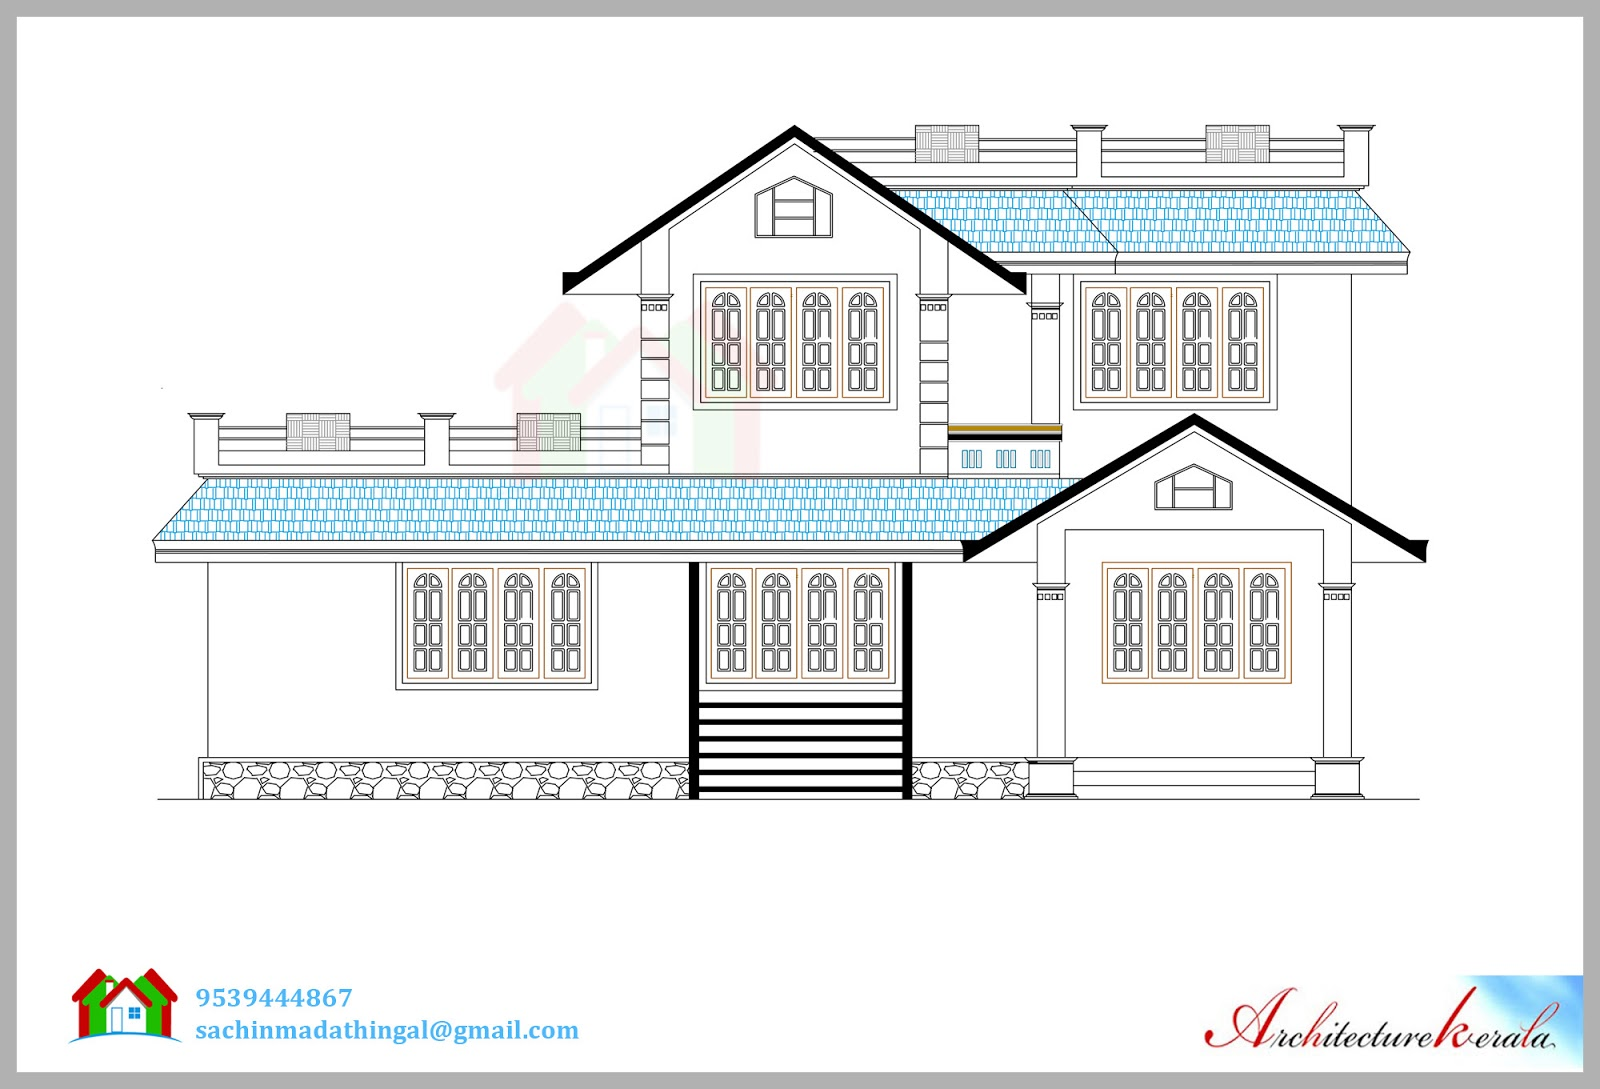 Building Front Elevation Drawings : Architecture kerala beautiful house elevation with its